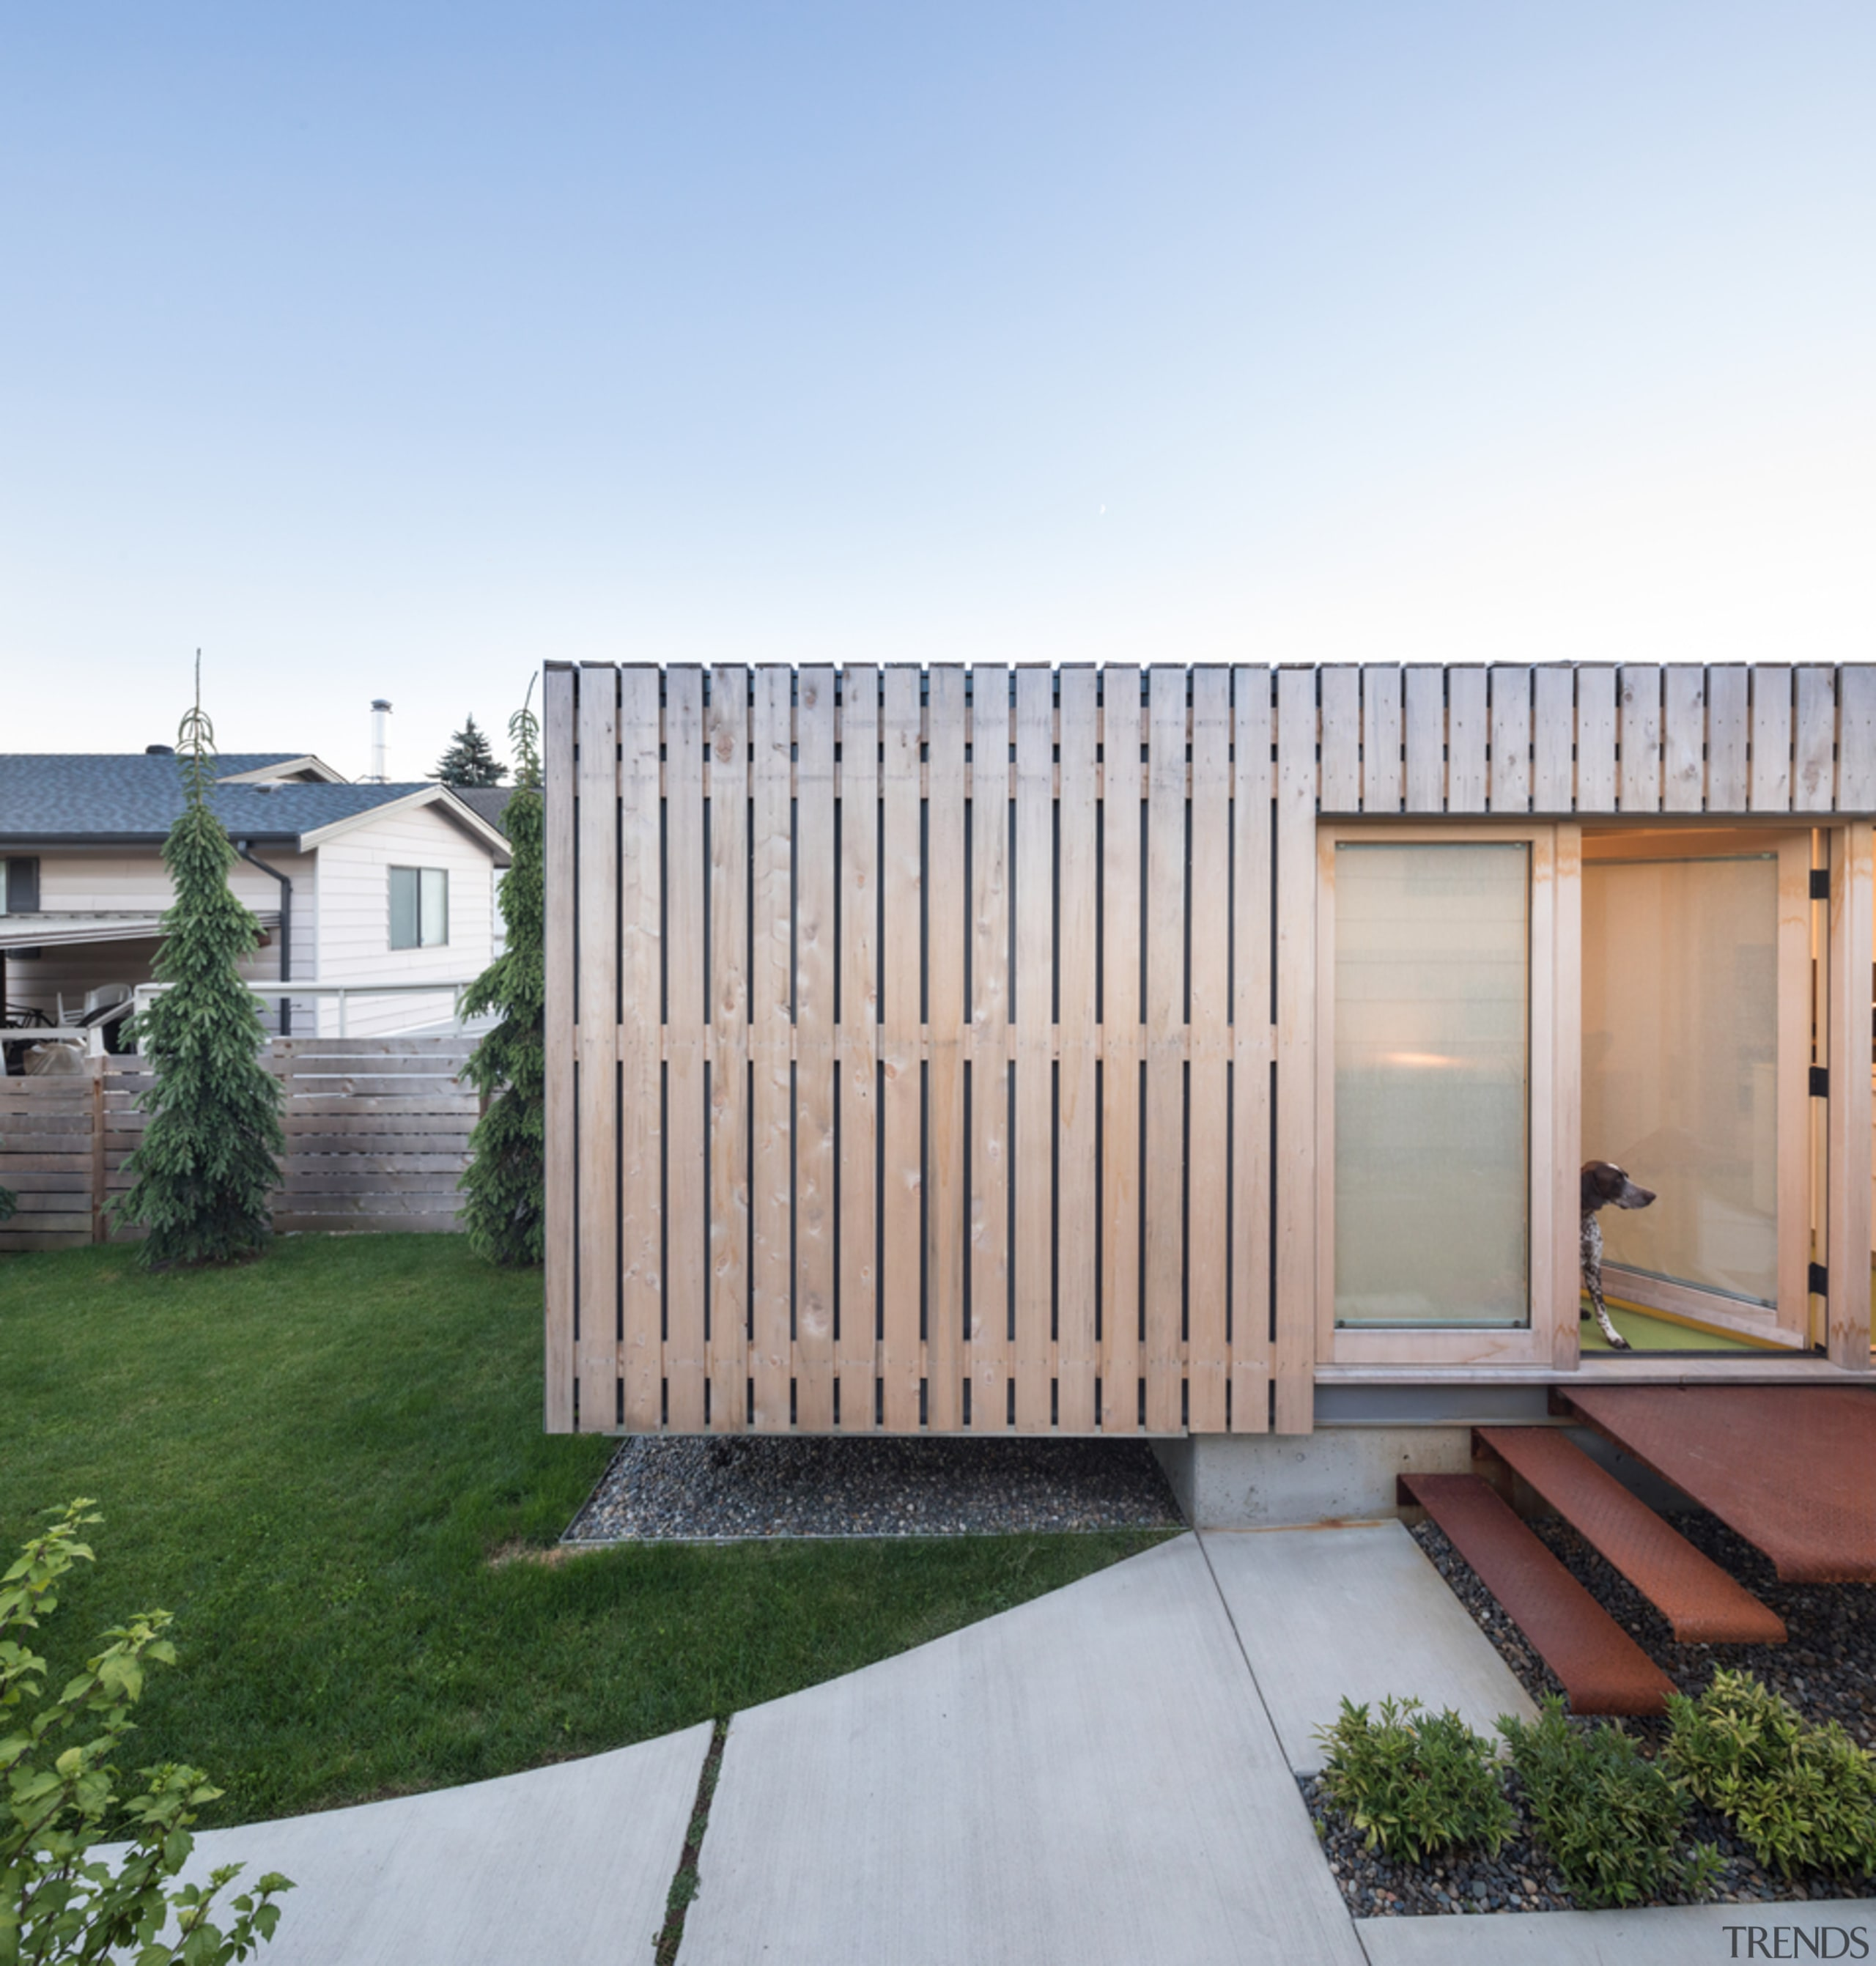 Architect in residence - architecture | backyard | architecture, backyard, daylighting, facade, home, house, property, real estate, residential area, shed, siding, white